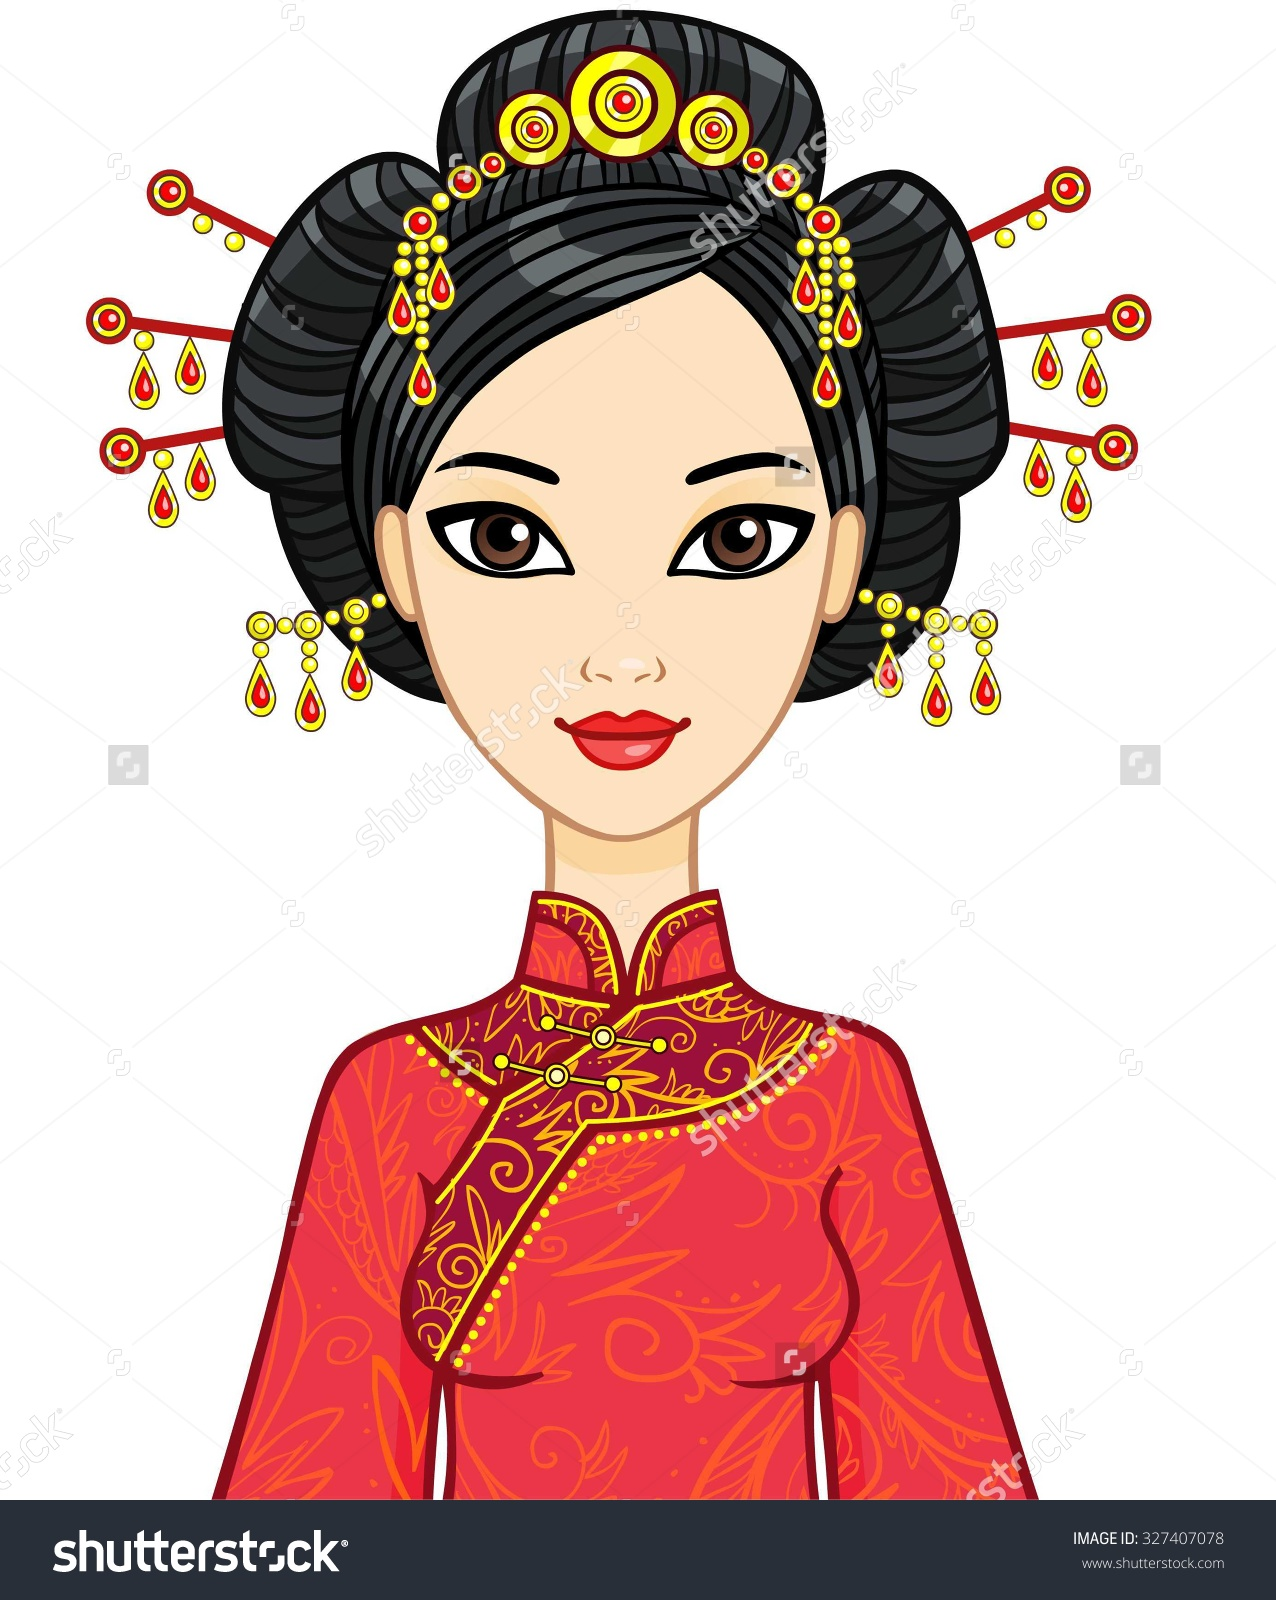 Traditional woman clipart png transparent download Animation Portrait Chinese Girl Traditional Clothes Stock Vector ... png transparent download